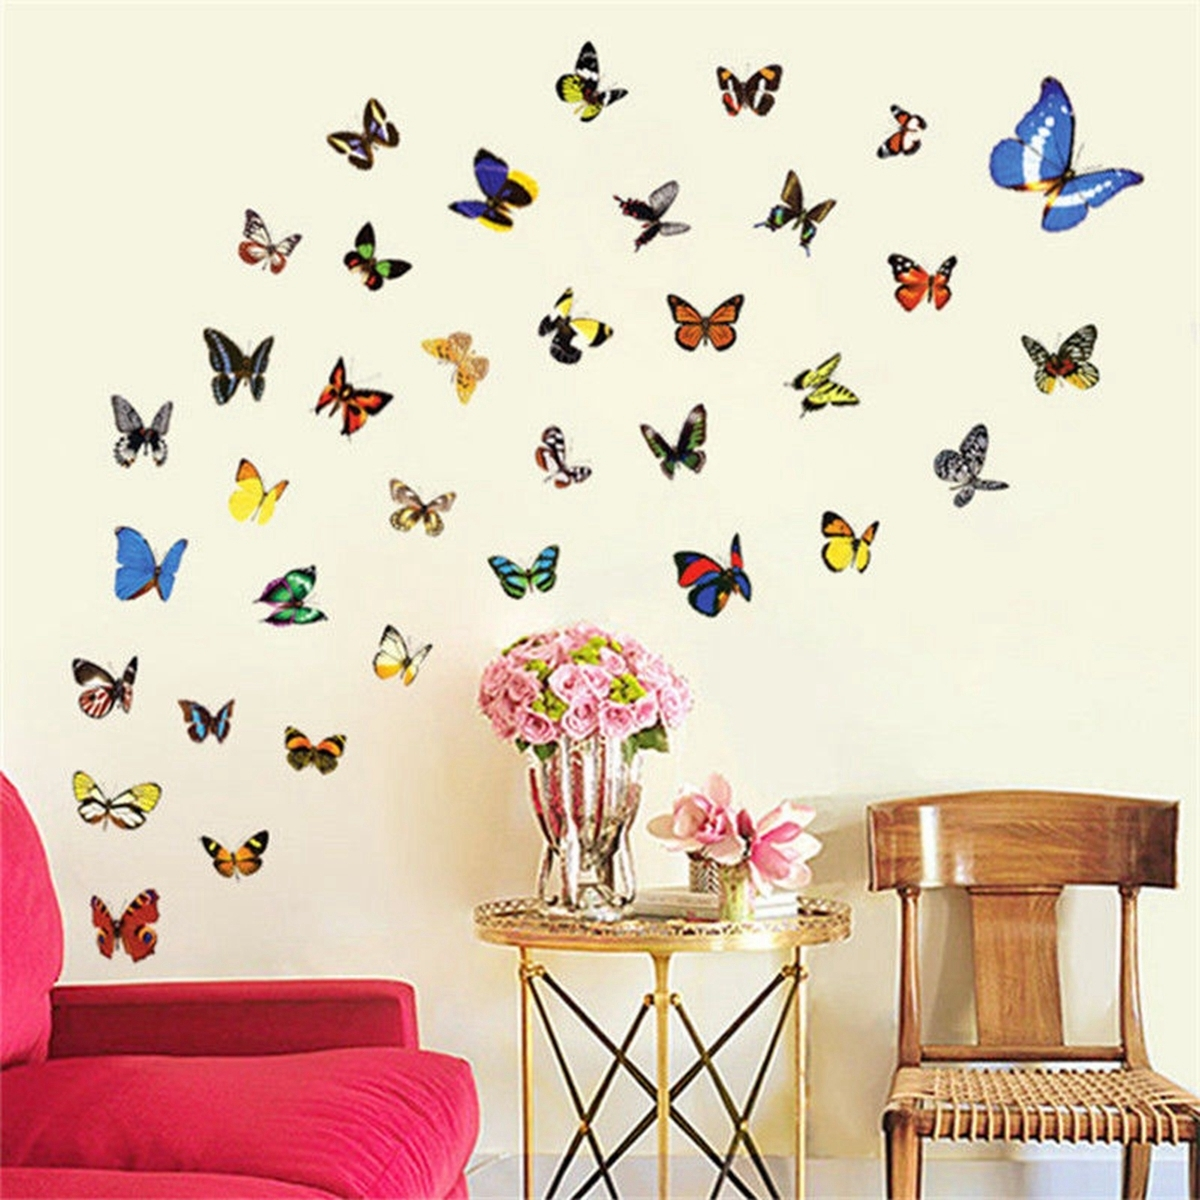 Ceramic Butterfly Wall Art Inside Best And Newest Buy Art Ceramic Tiles And Get Free Shipping On Aliexpress (View 3 of 15)